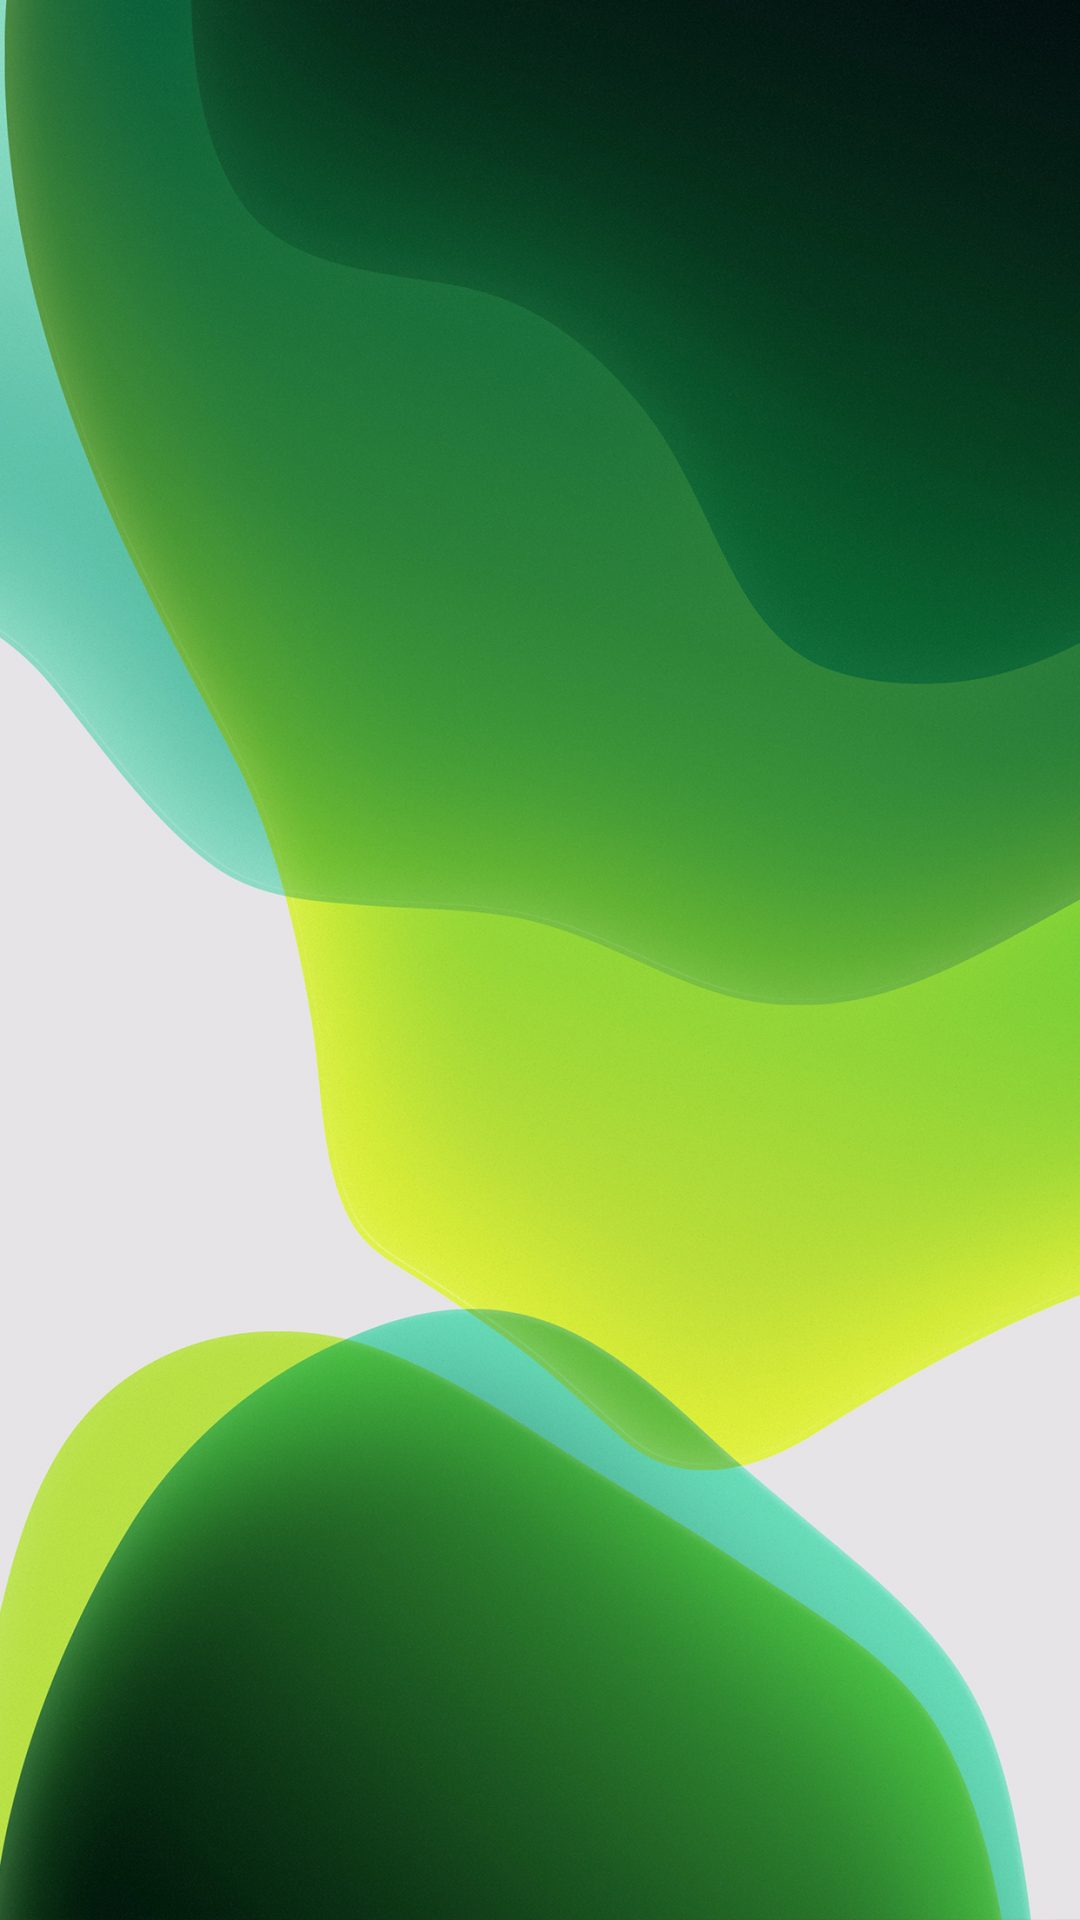 Ios 13 Stock Wallpapers 4k Download Droidviews